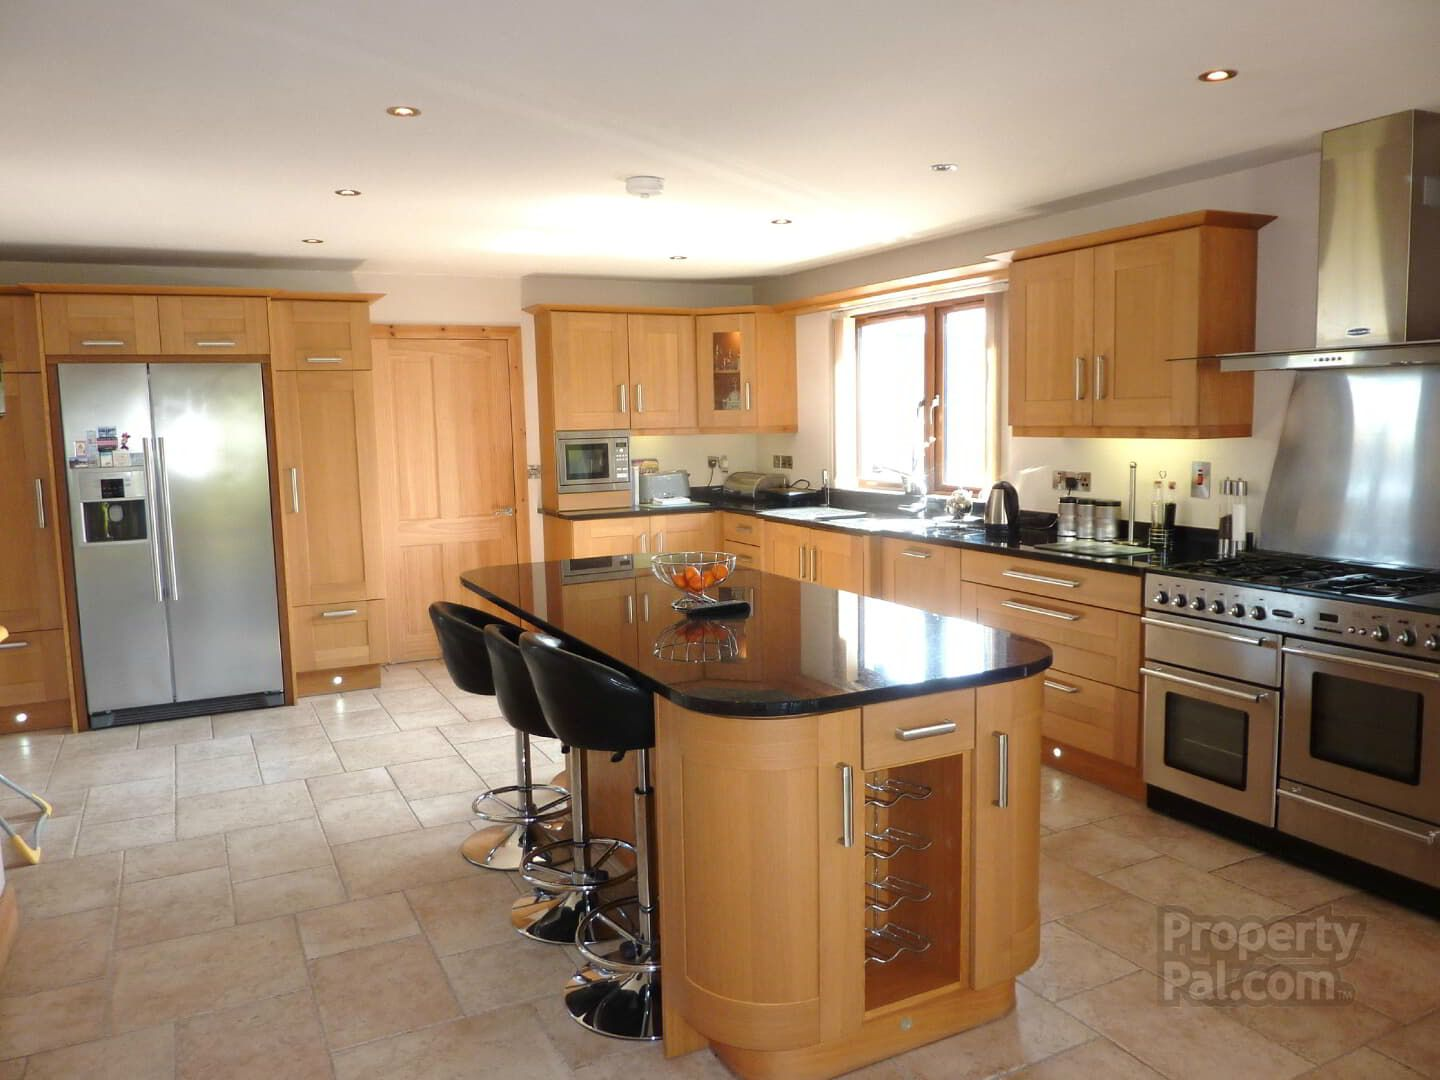 94 Gillygooley Road, Omagh Omagh, Property for sale, Kitchen